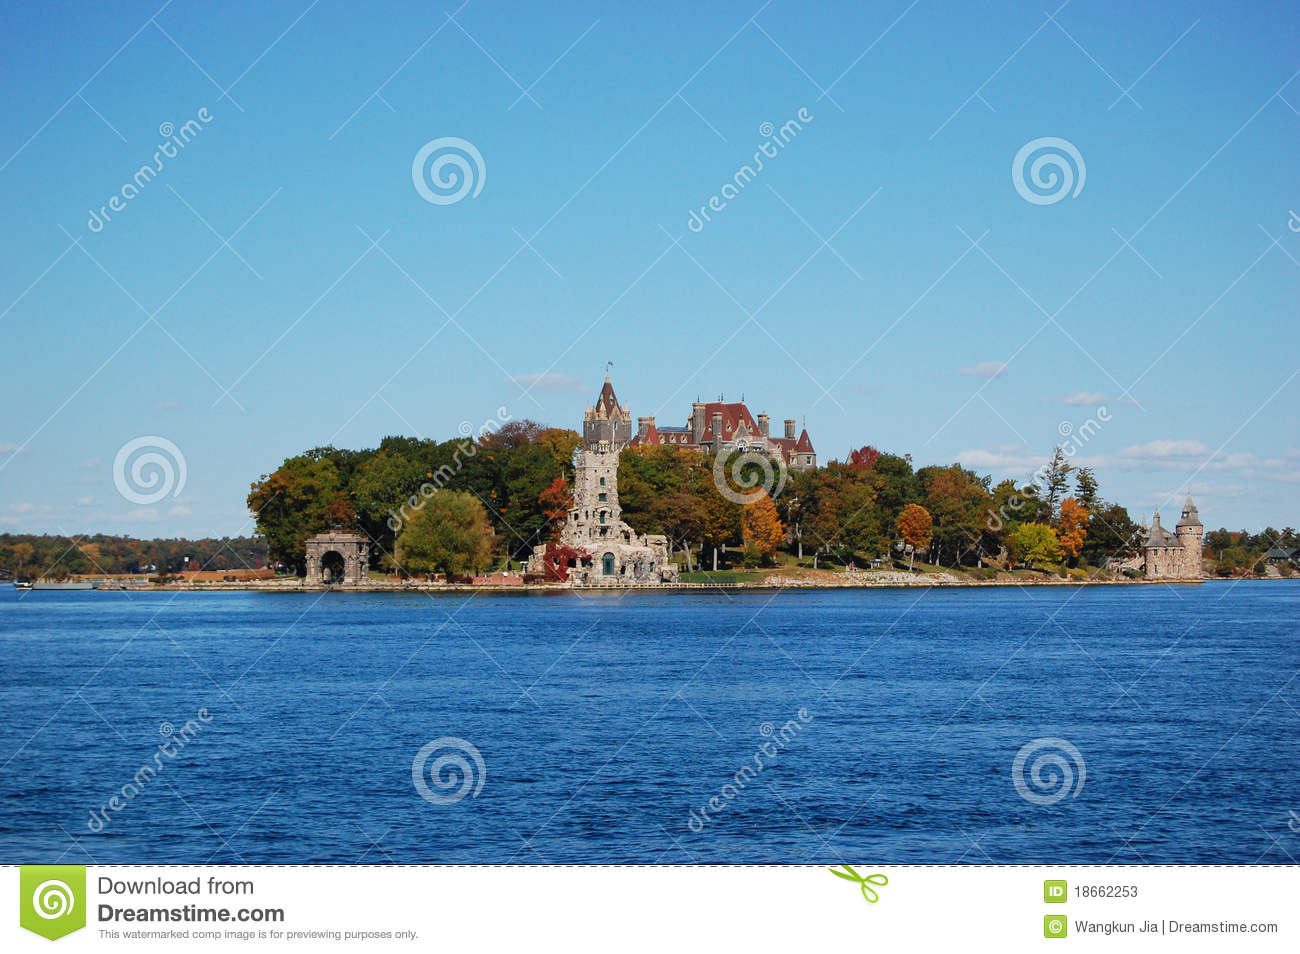 Thousand Islands New York Boat Tour